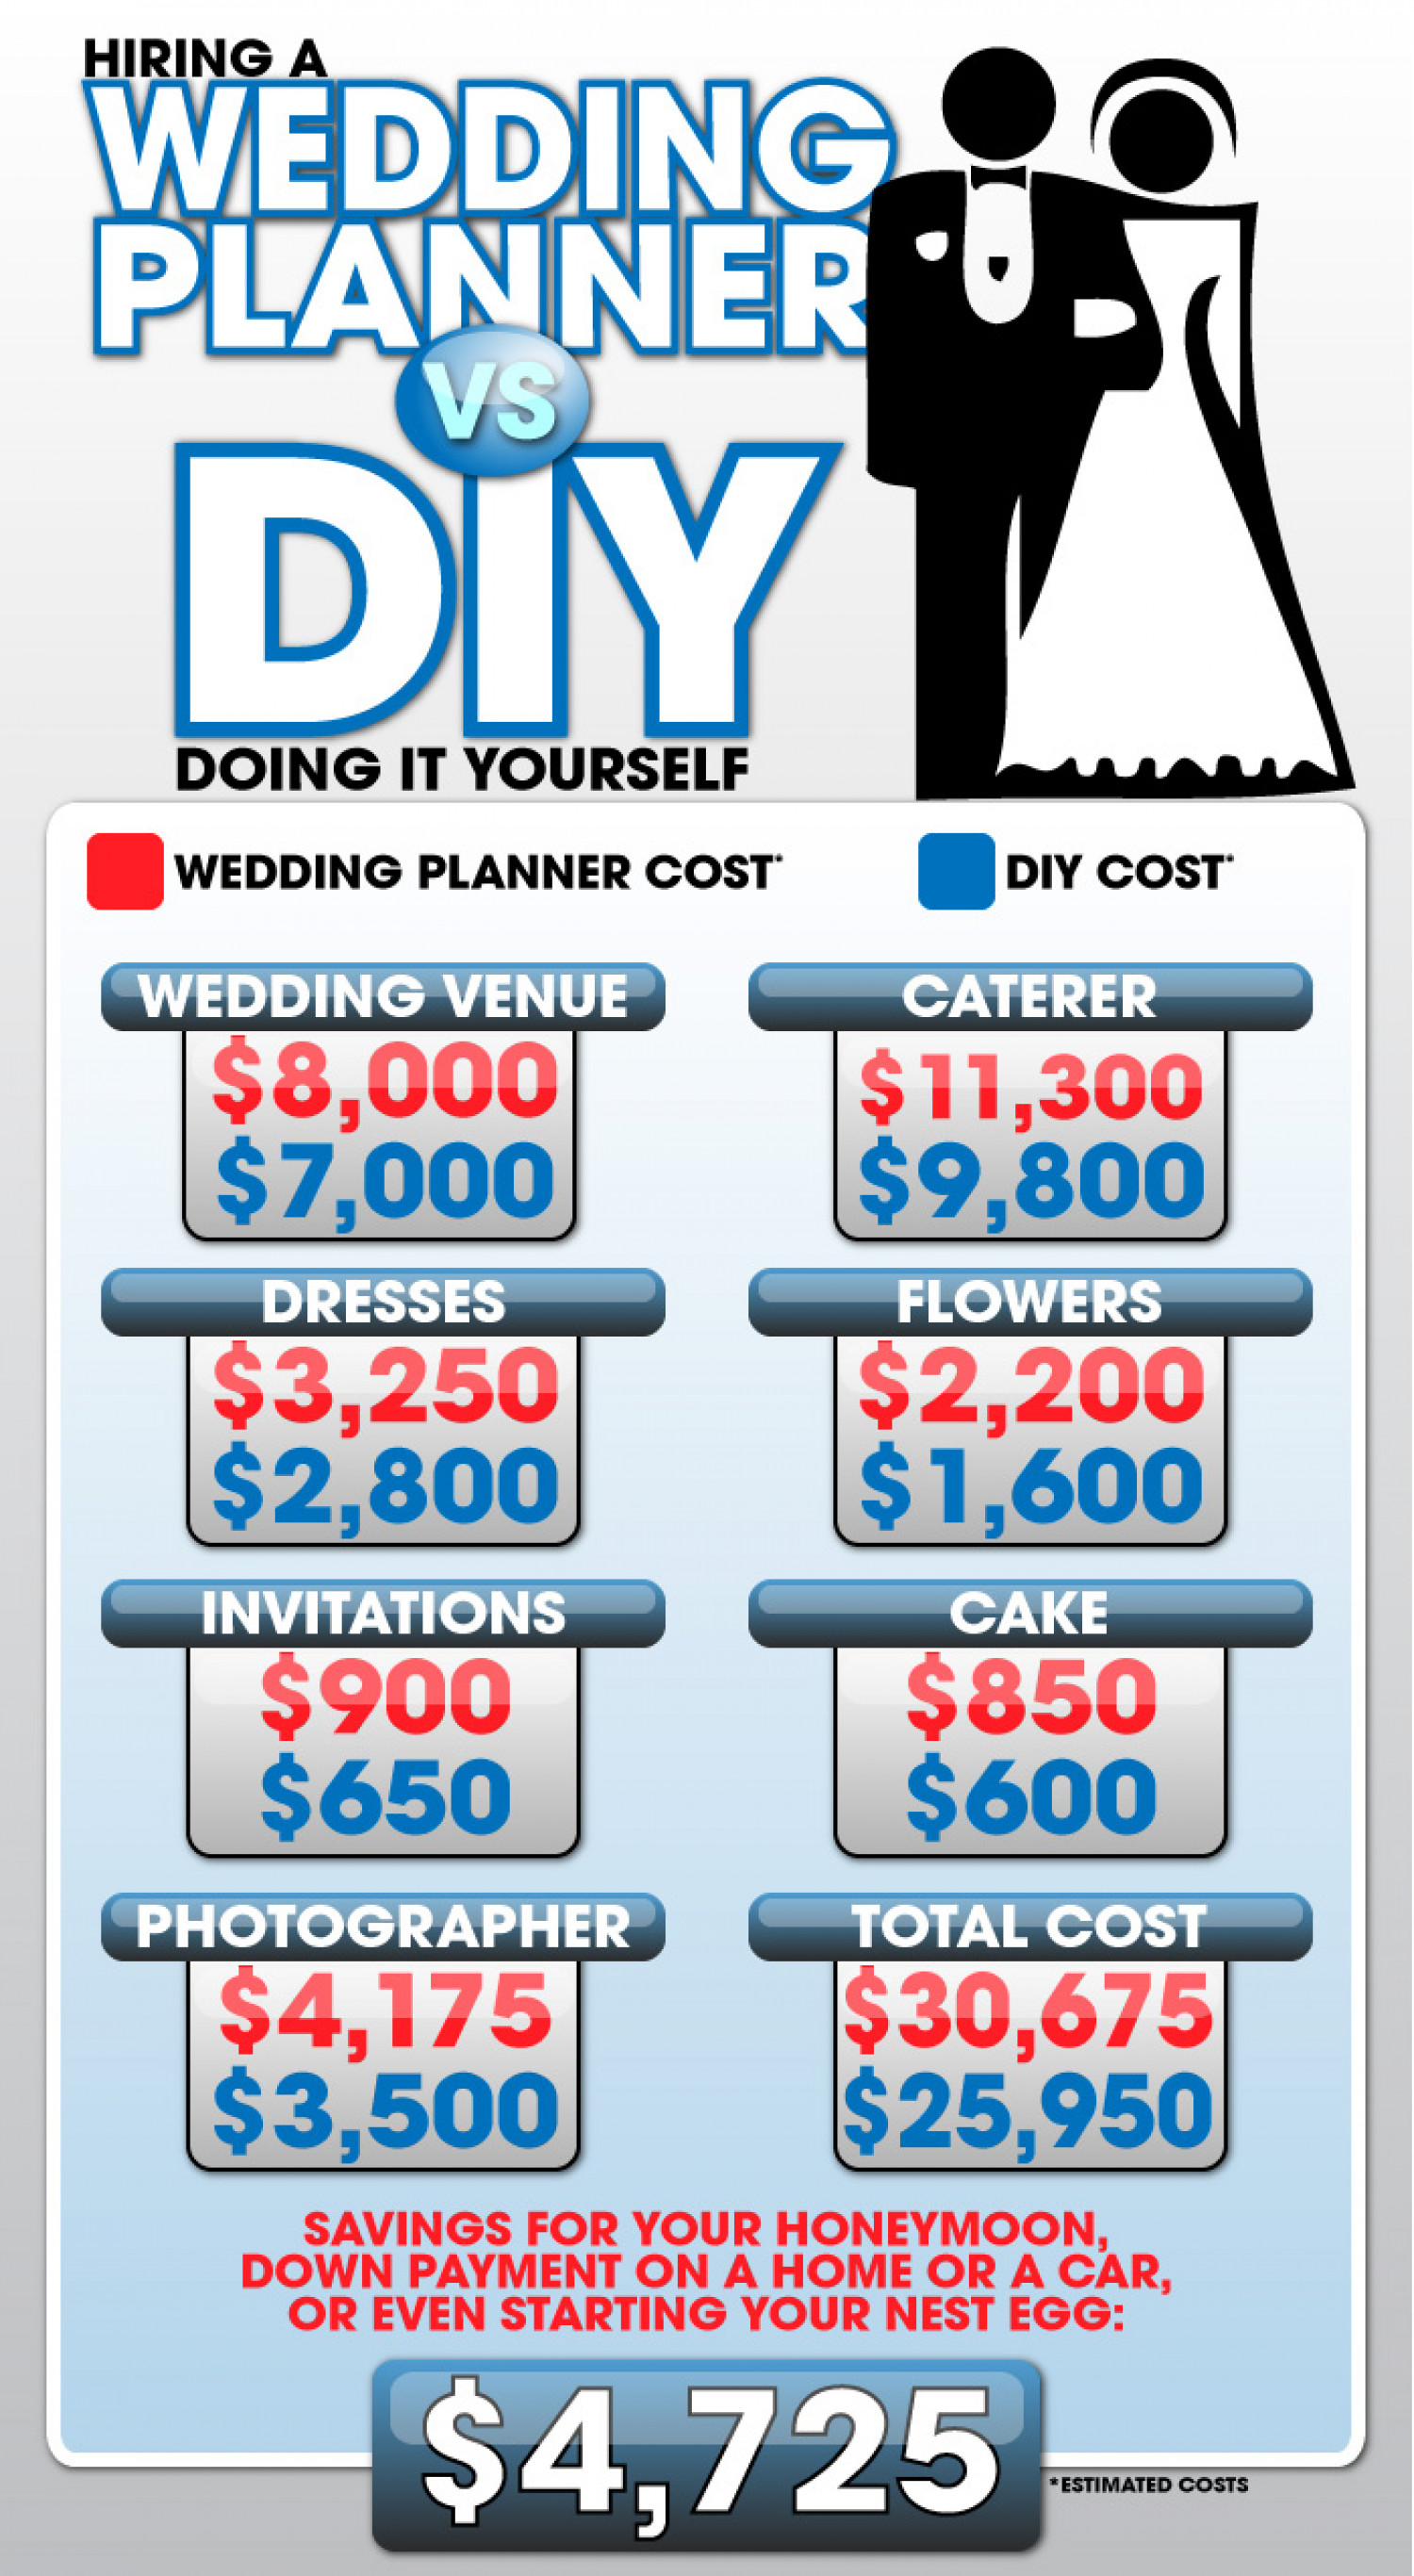 Hiring a wedding day planner vs diy visual hiring a wedding day planner vs diy infographic solutioingenieria Image collections